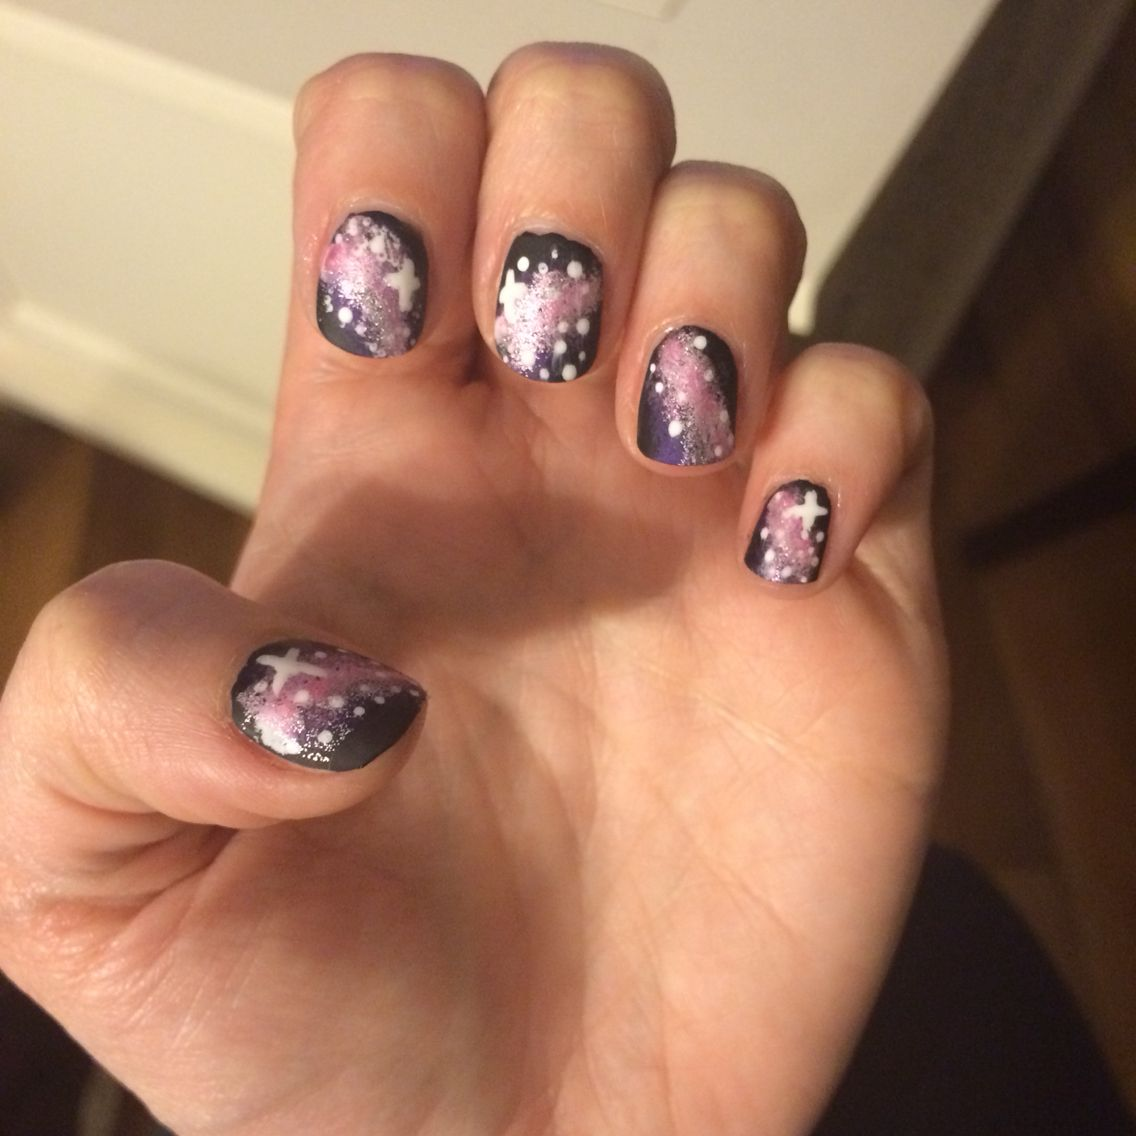 Galaxy nail design | My Own Nail Art | Pinterest | Galaxy nails ...